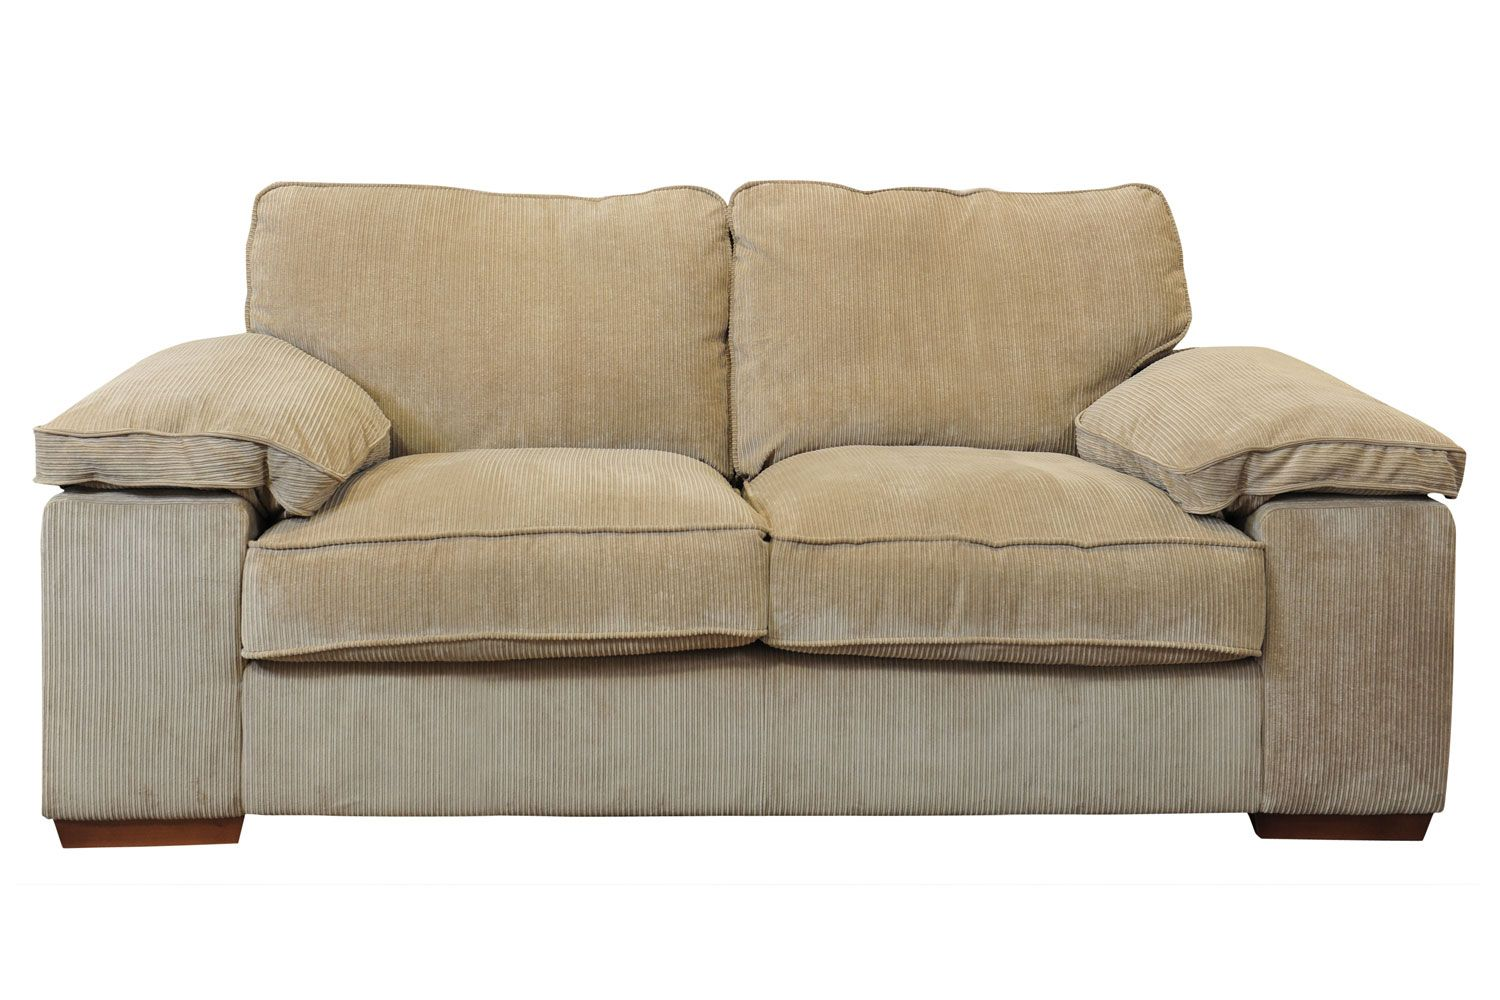 Utah 2 Seater Fabric Sofa From Harvey Norman Ireland